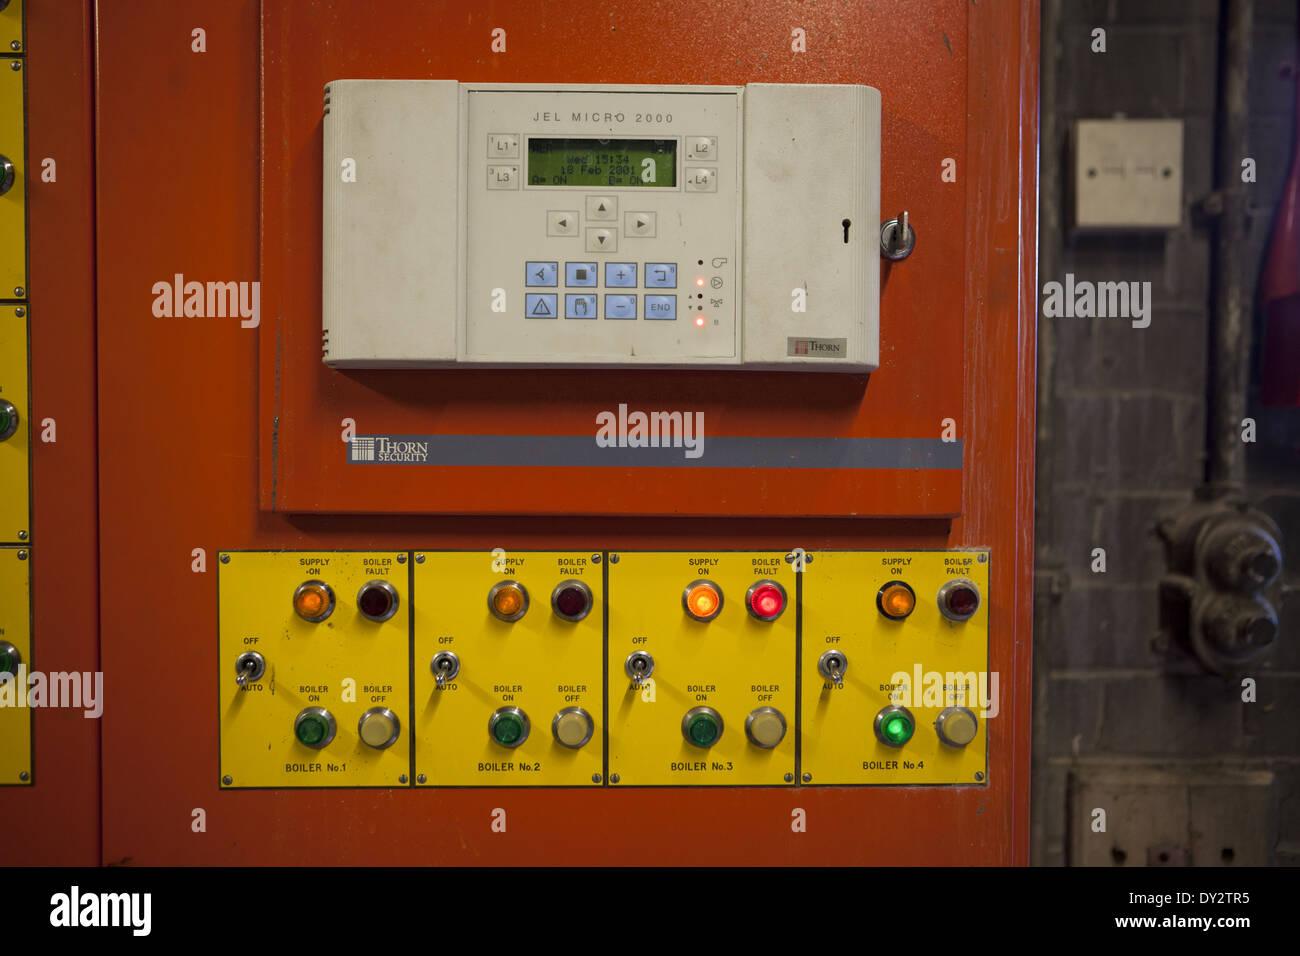 BMS Building Management System computer-based control system installed in buildings controls monitors building's equipment - Stock Image